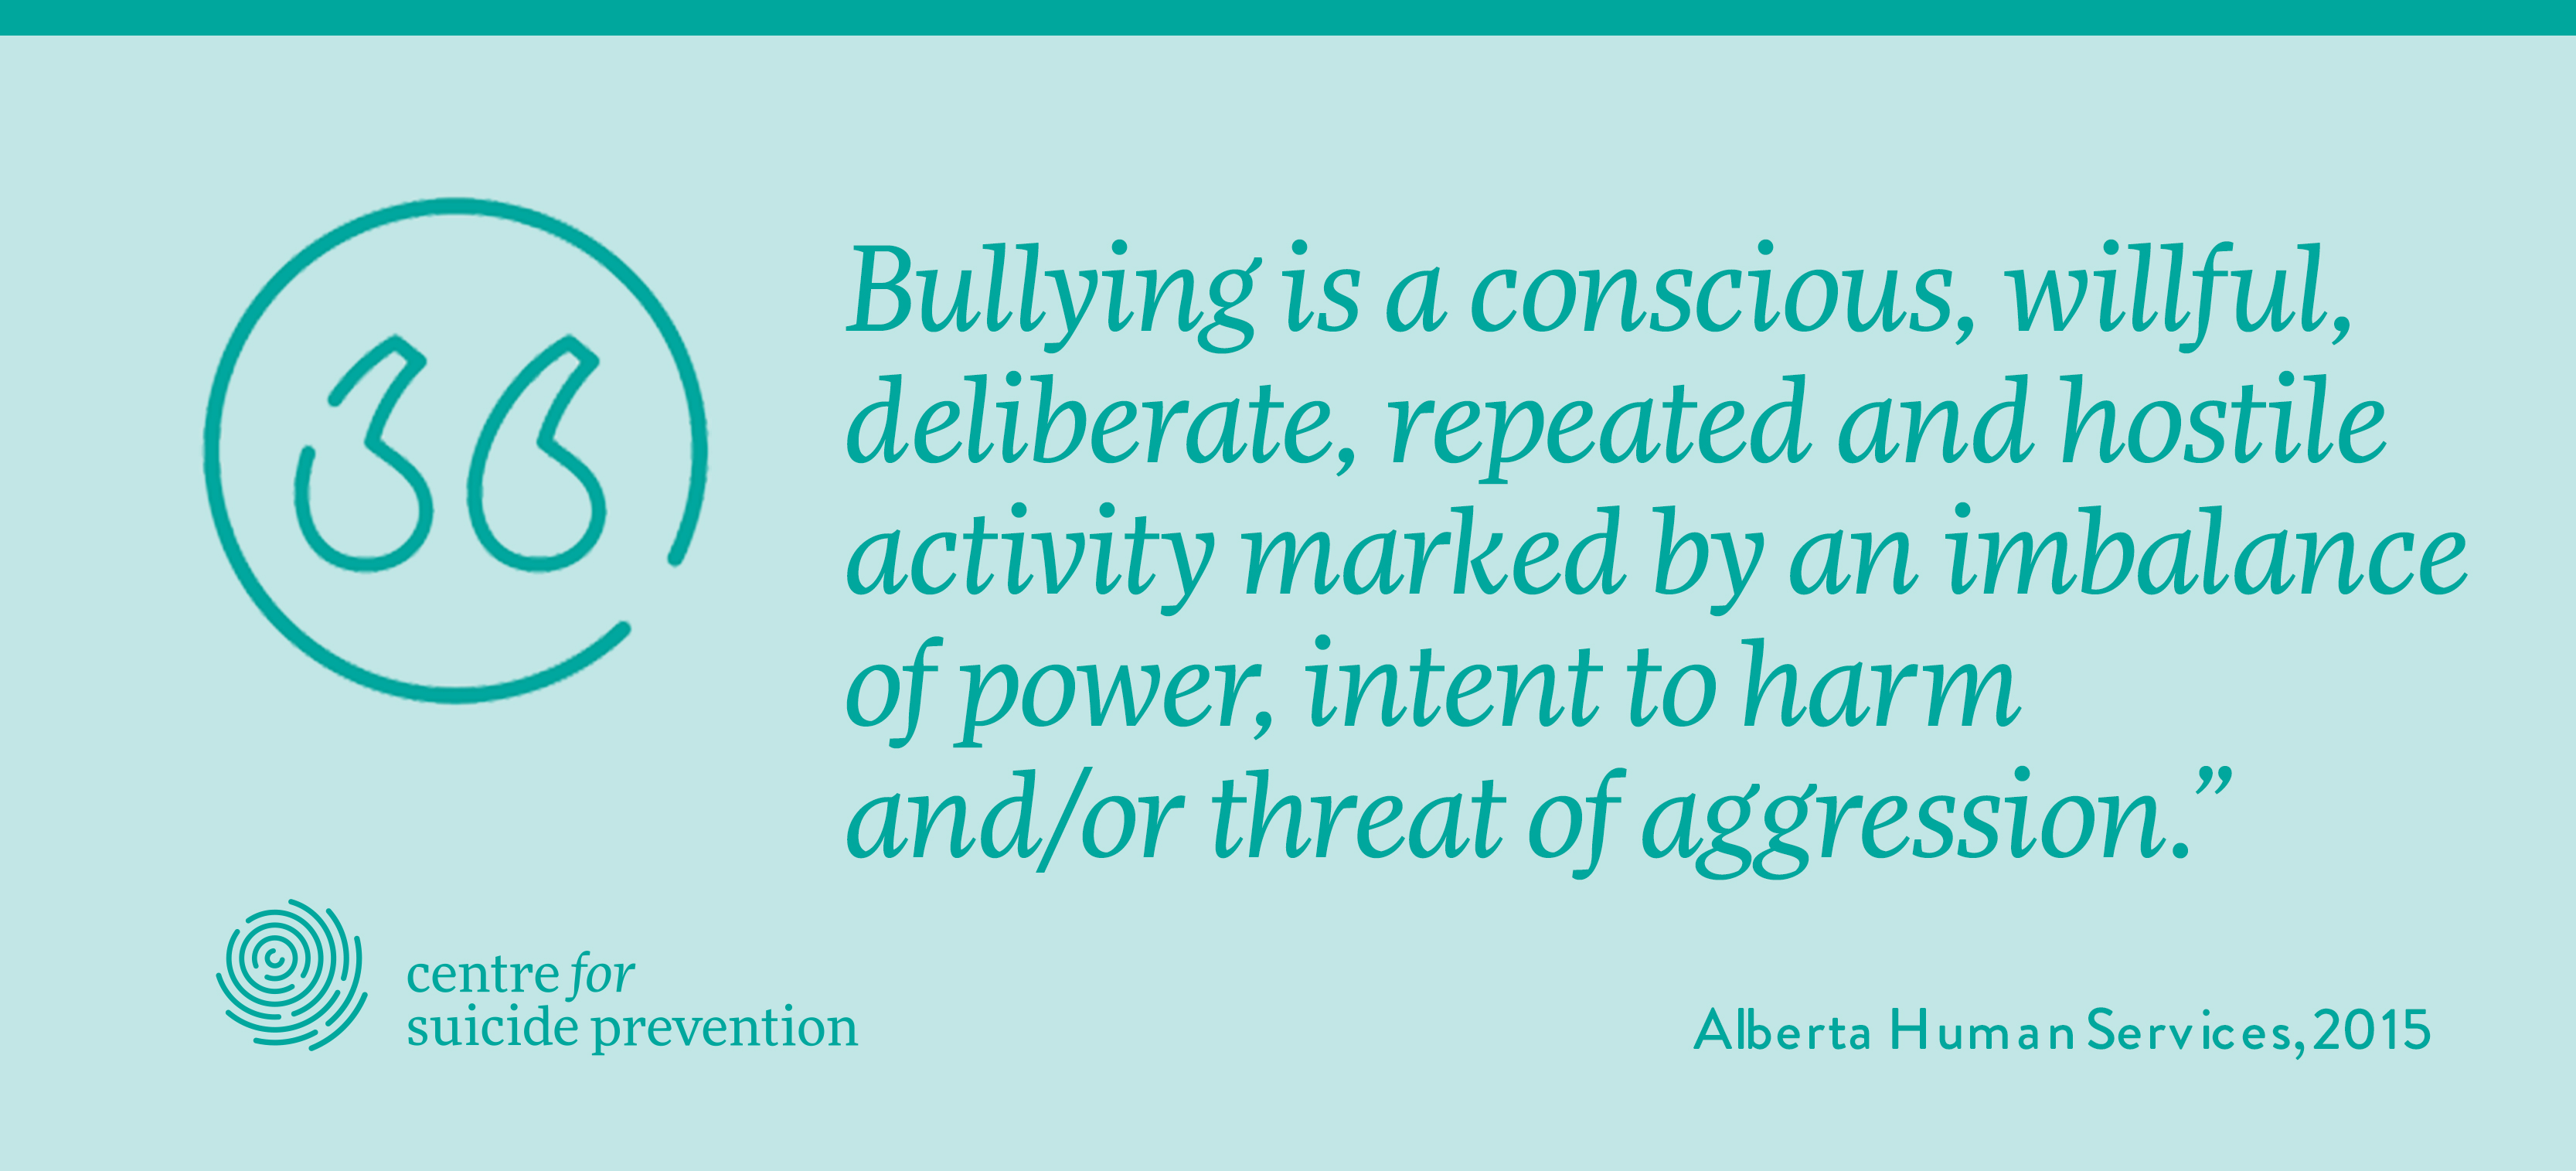 How Many Types Of Bullying Are There